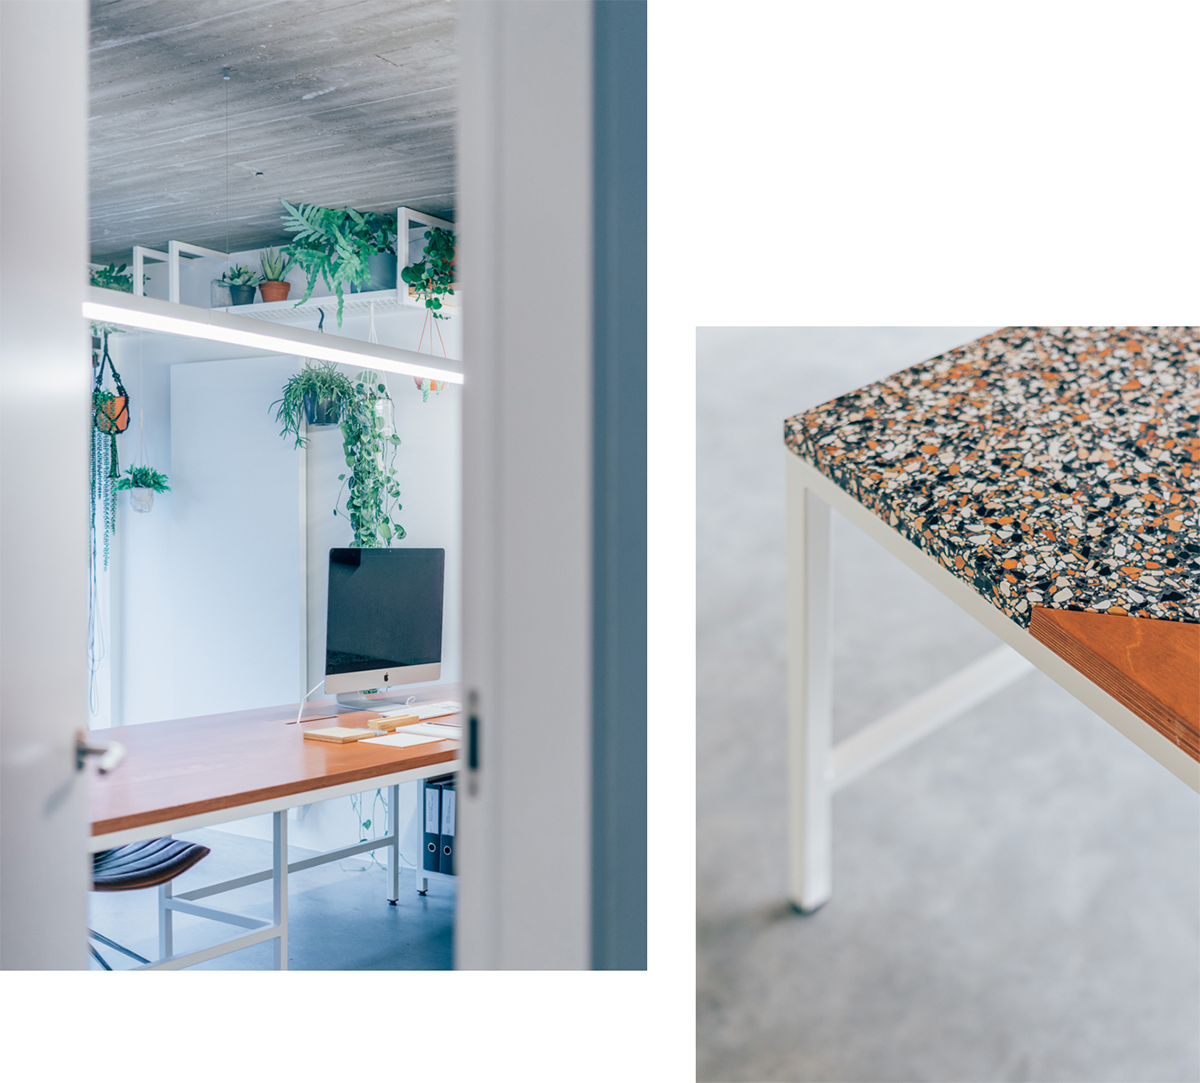 WORK_ home office by Studio Boîte by Hannelore Veelaert for aupaysdesmerveillesblog.be